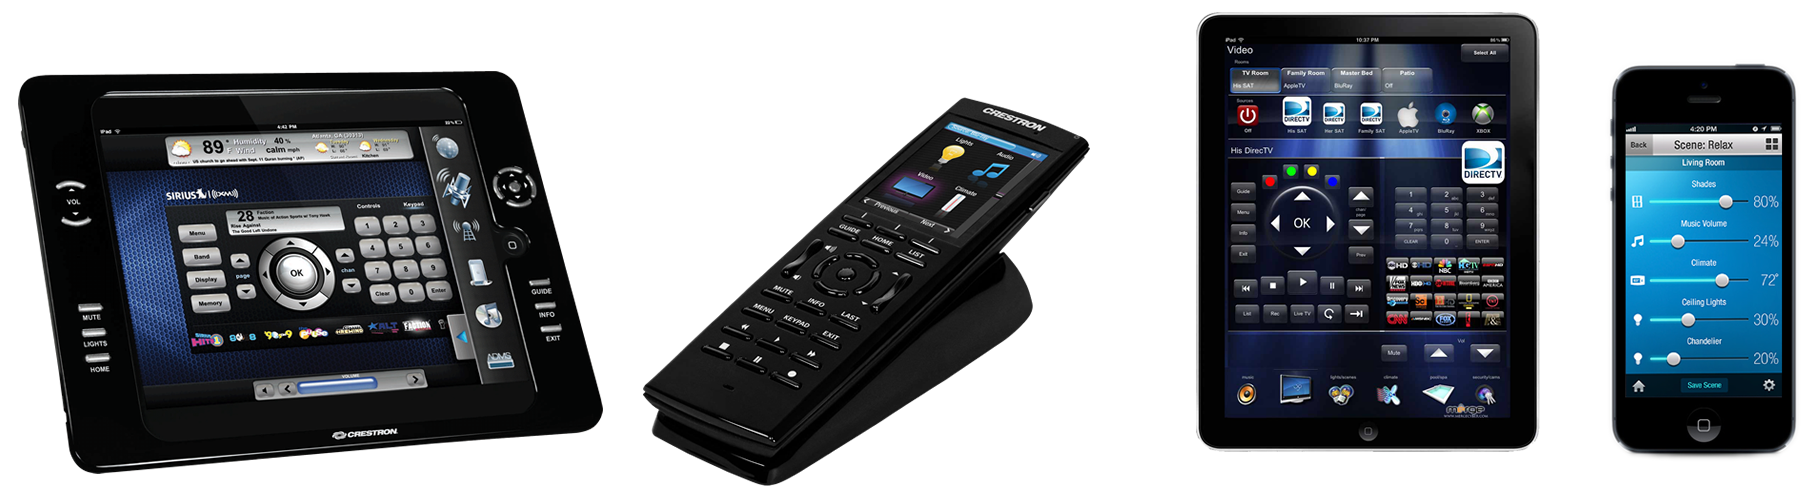 Connected Smart Television